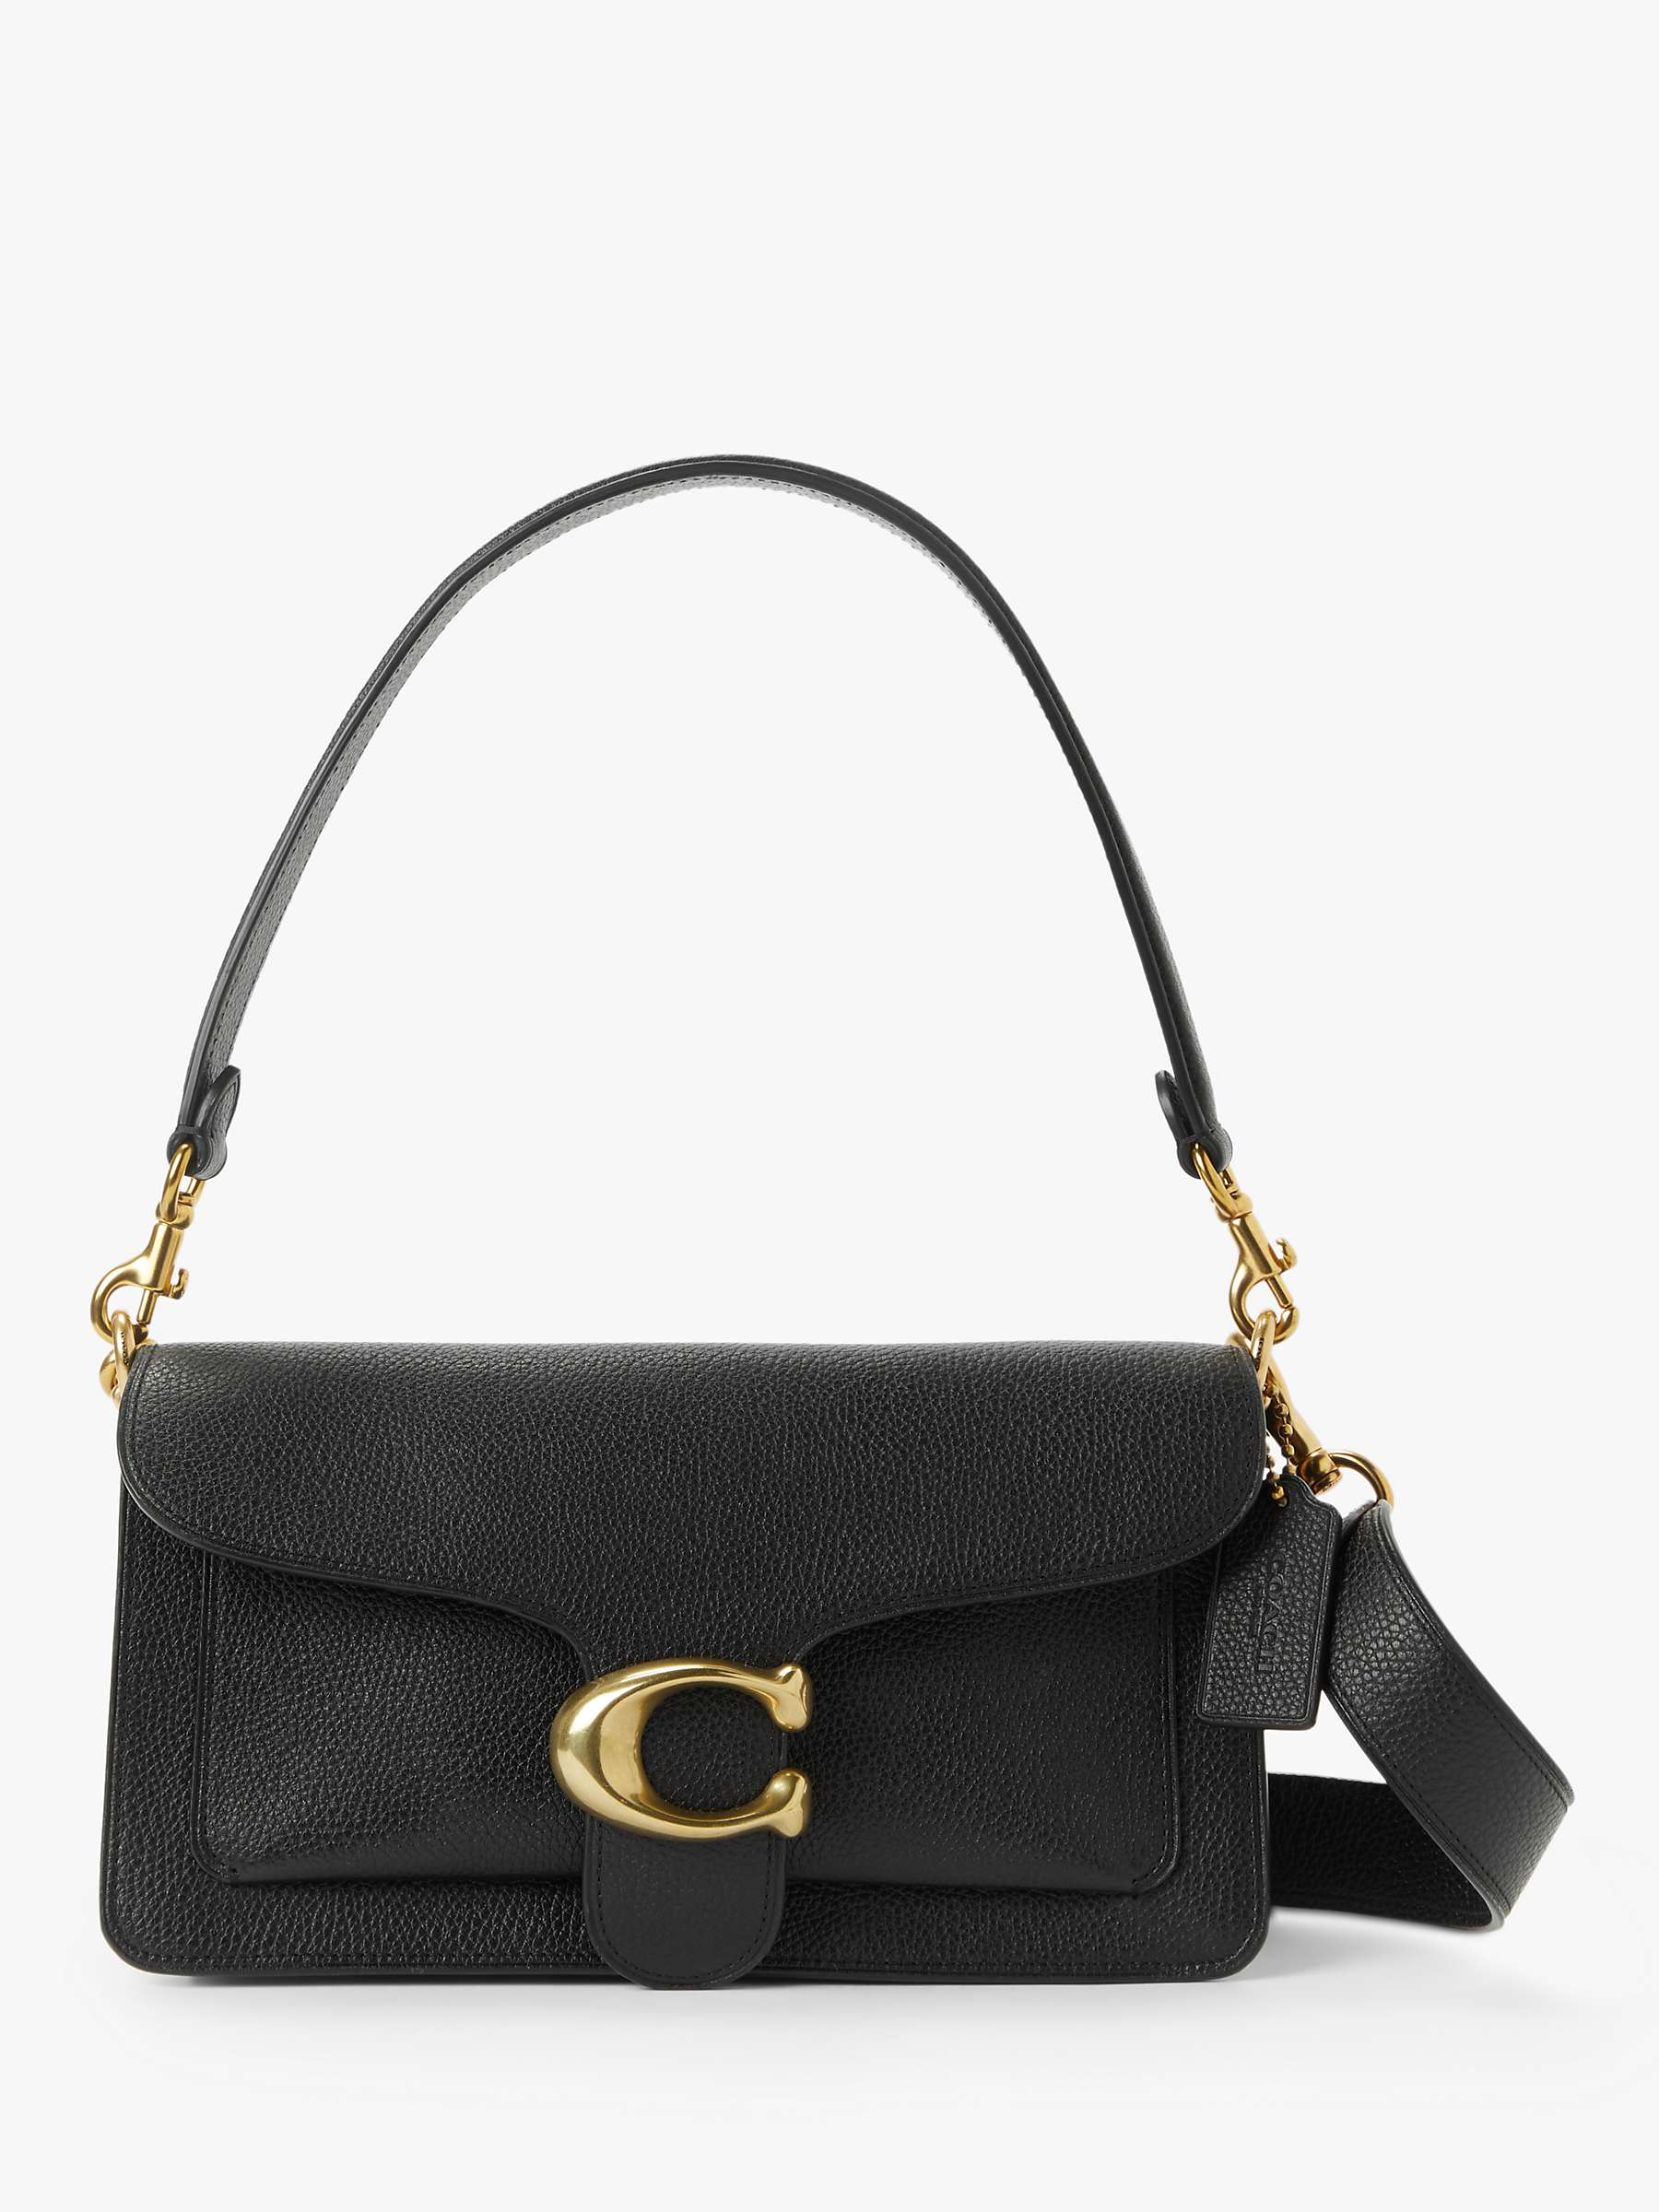 Coach Tabby 26 Leather Shoulder Bag, Black by John Lewis